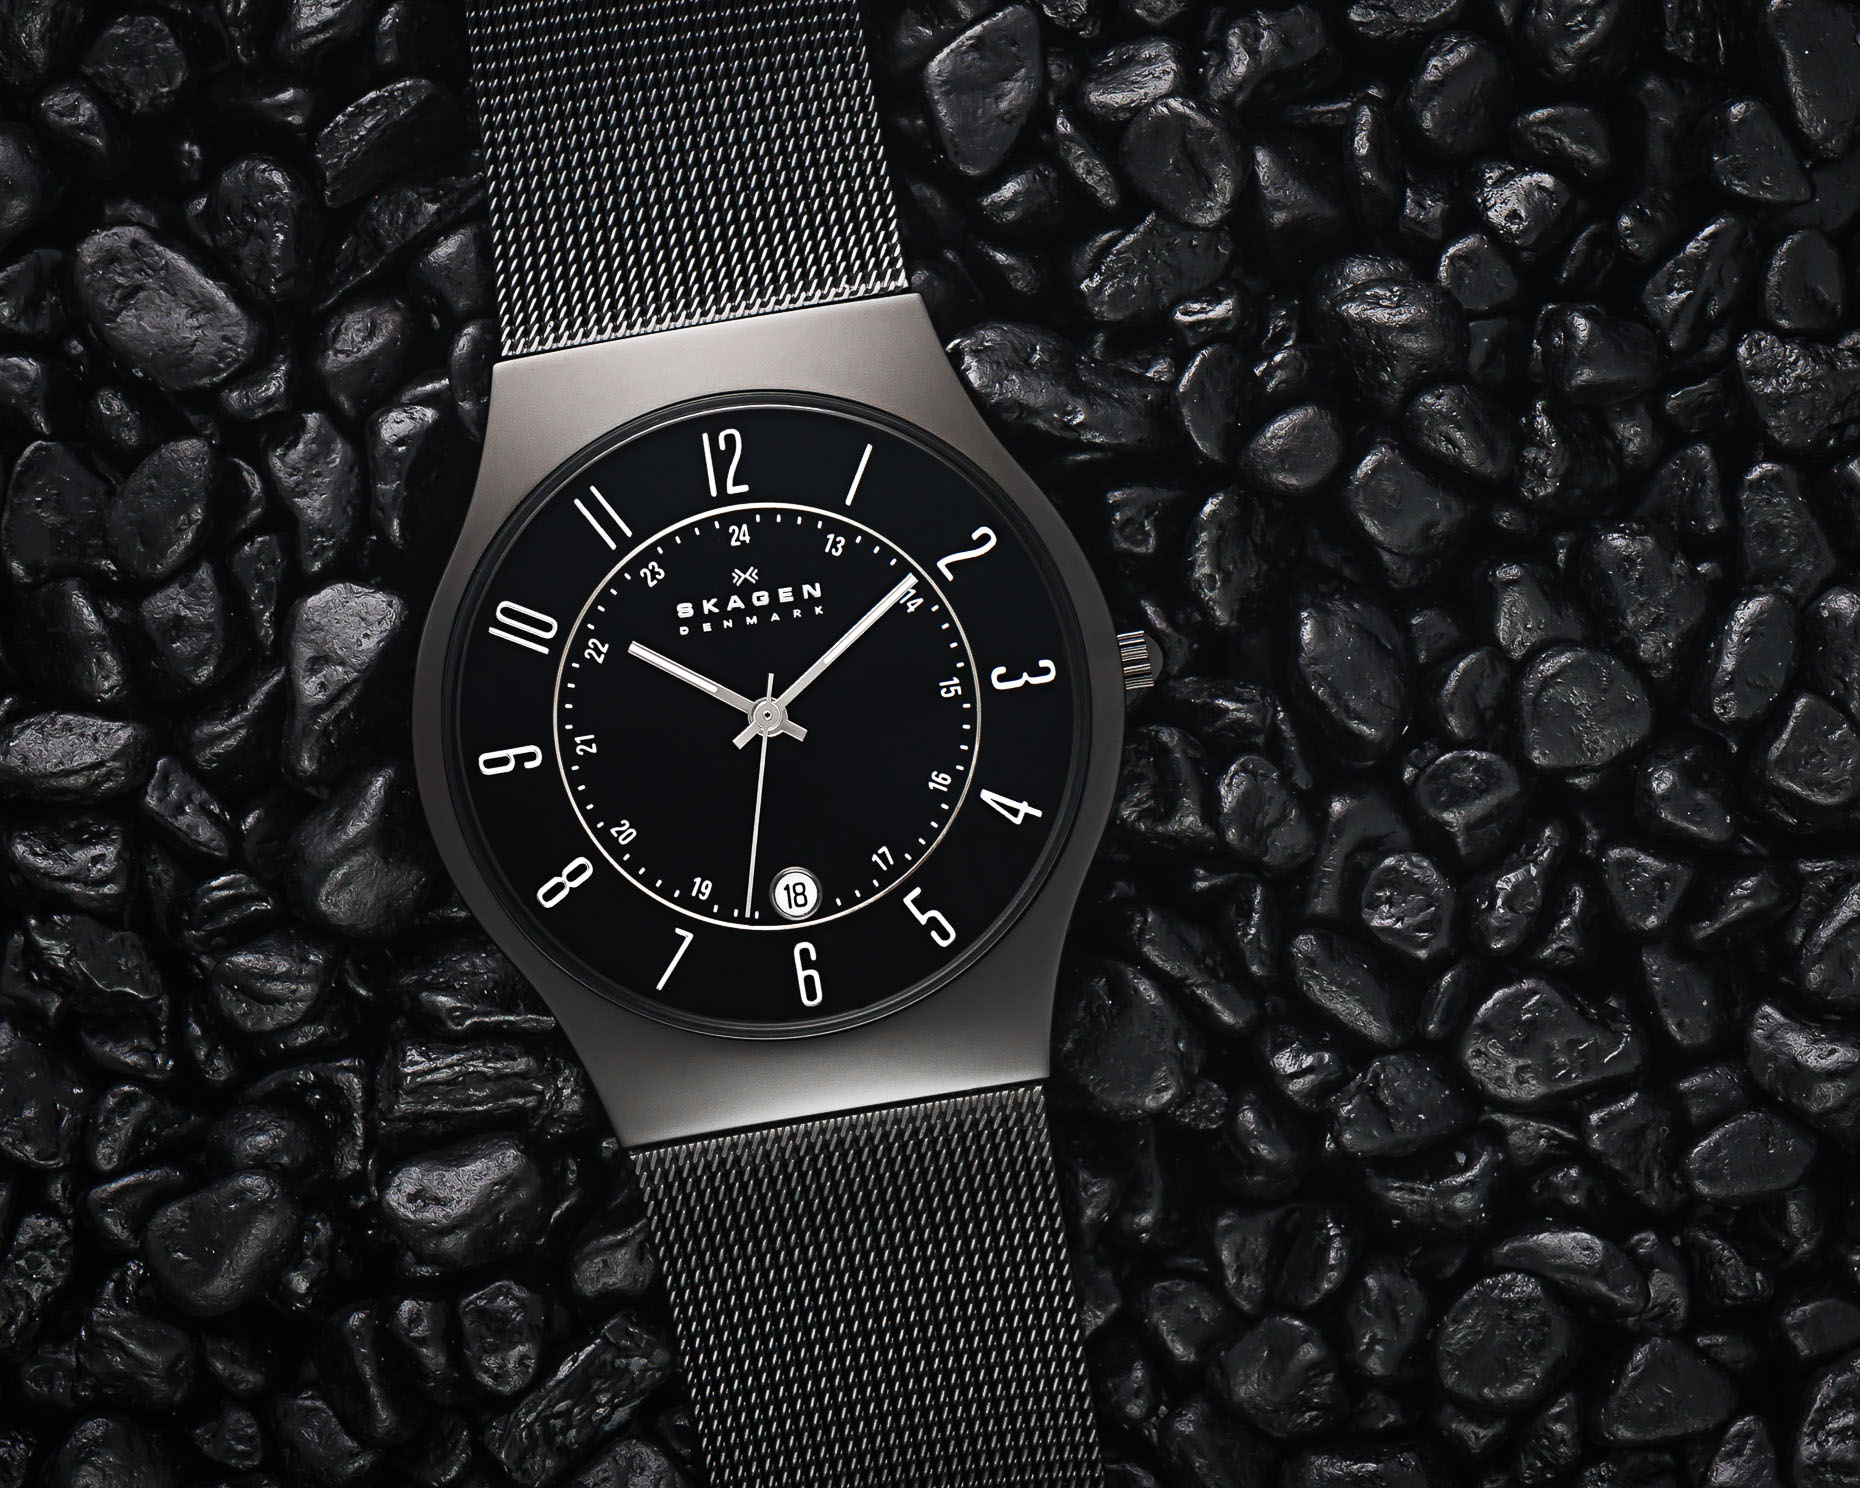 Skagen Denmark Titanium - Christophe Benard Photography - Edmonton Commercial Photographer, Edmonton Commercial Photography, Edmonton Product Photographer, Edmonton Product Photography, Still Life Photographer in Canada, Product Photographer in Canada, Watch Photographer, Watch Photography